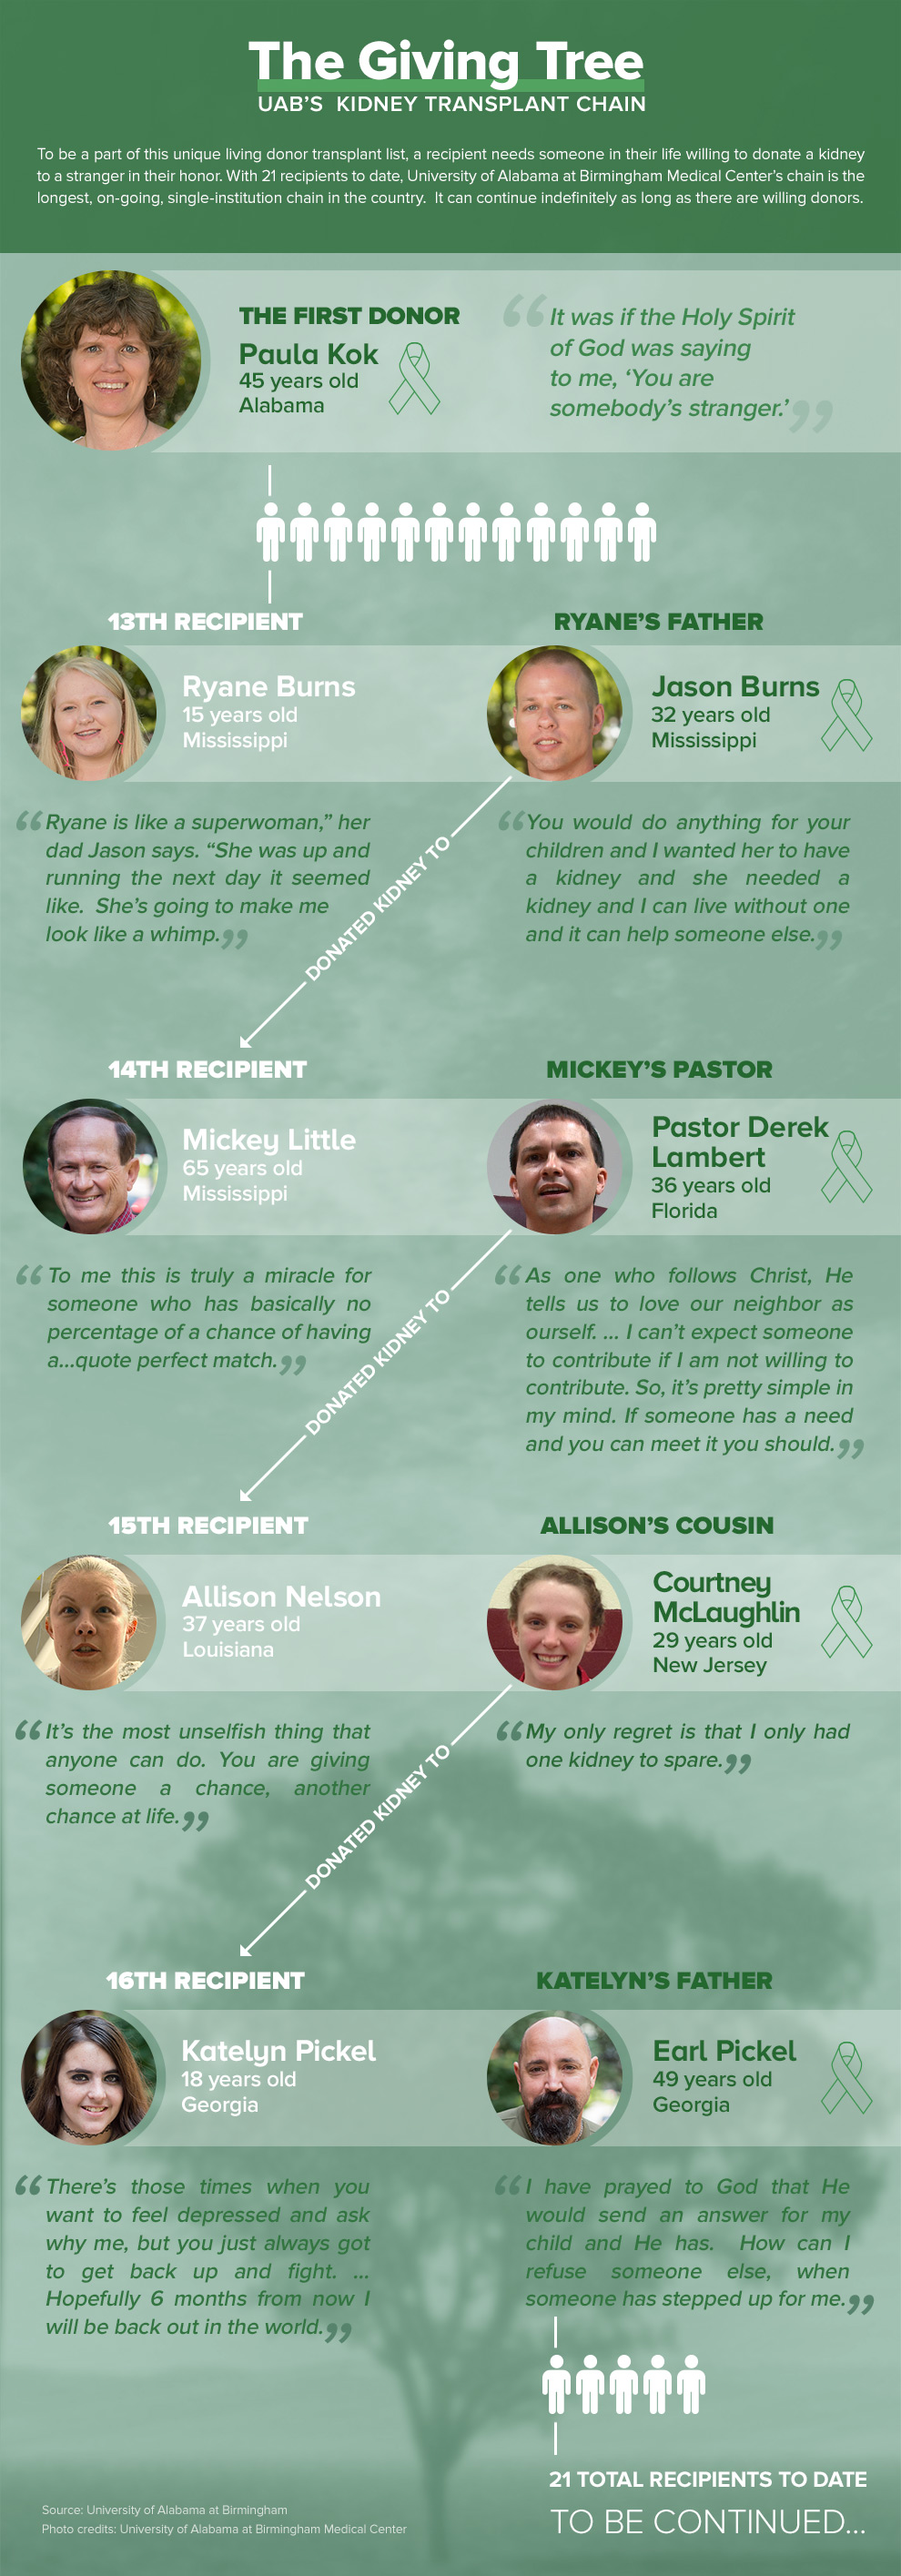 The Giving Tree - UAB Kidney Transplant Chain Infographic